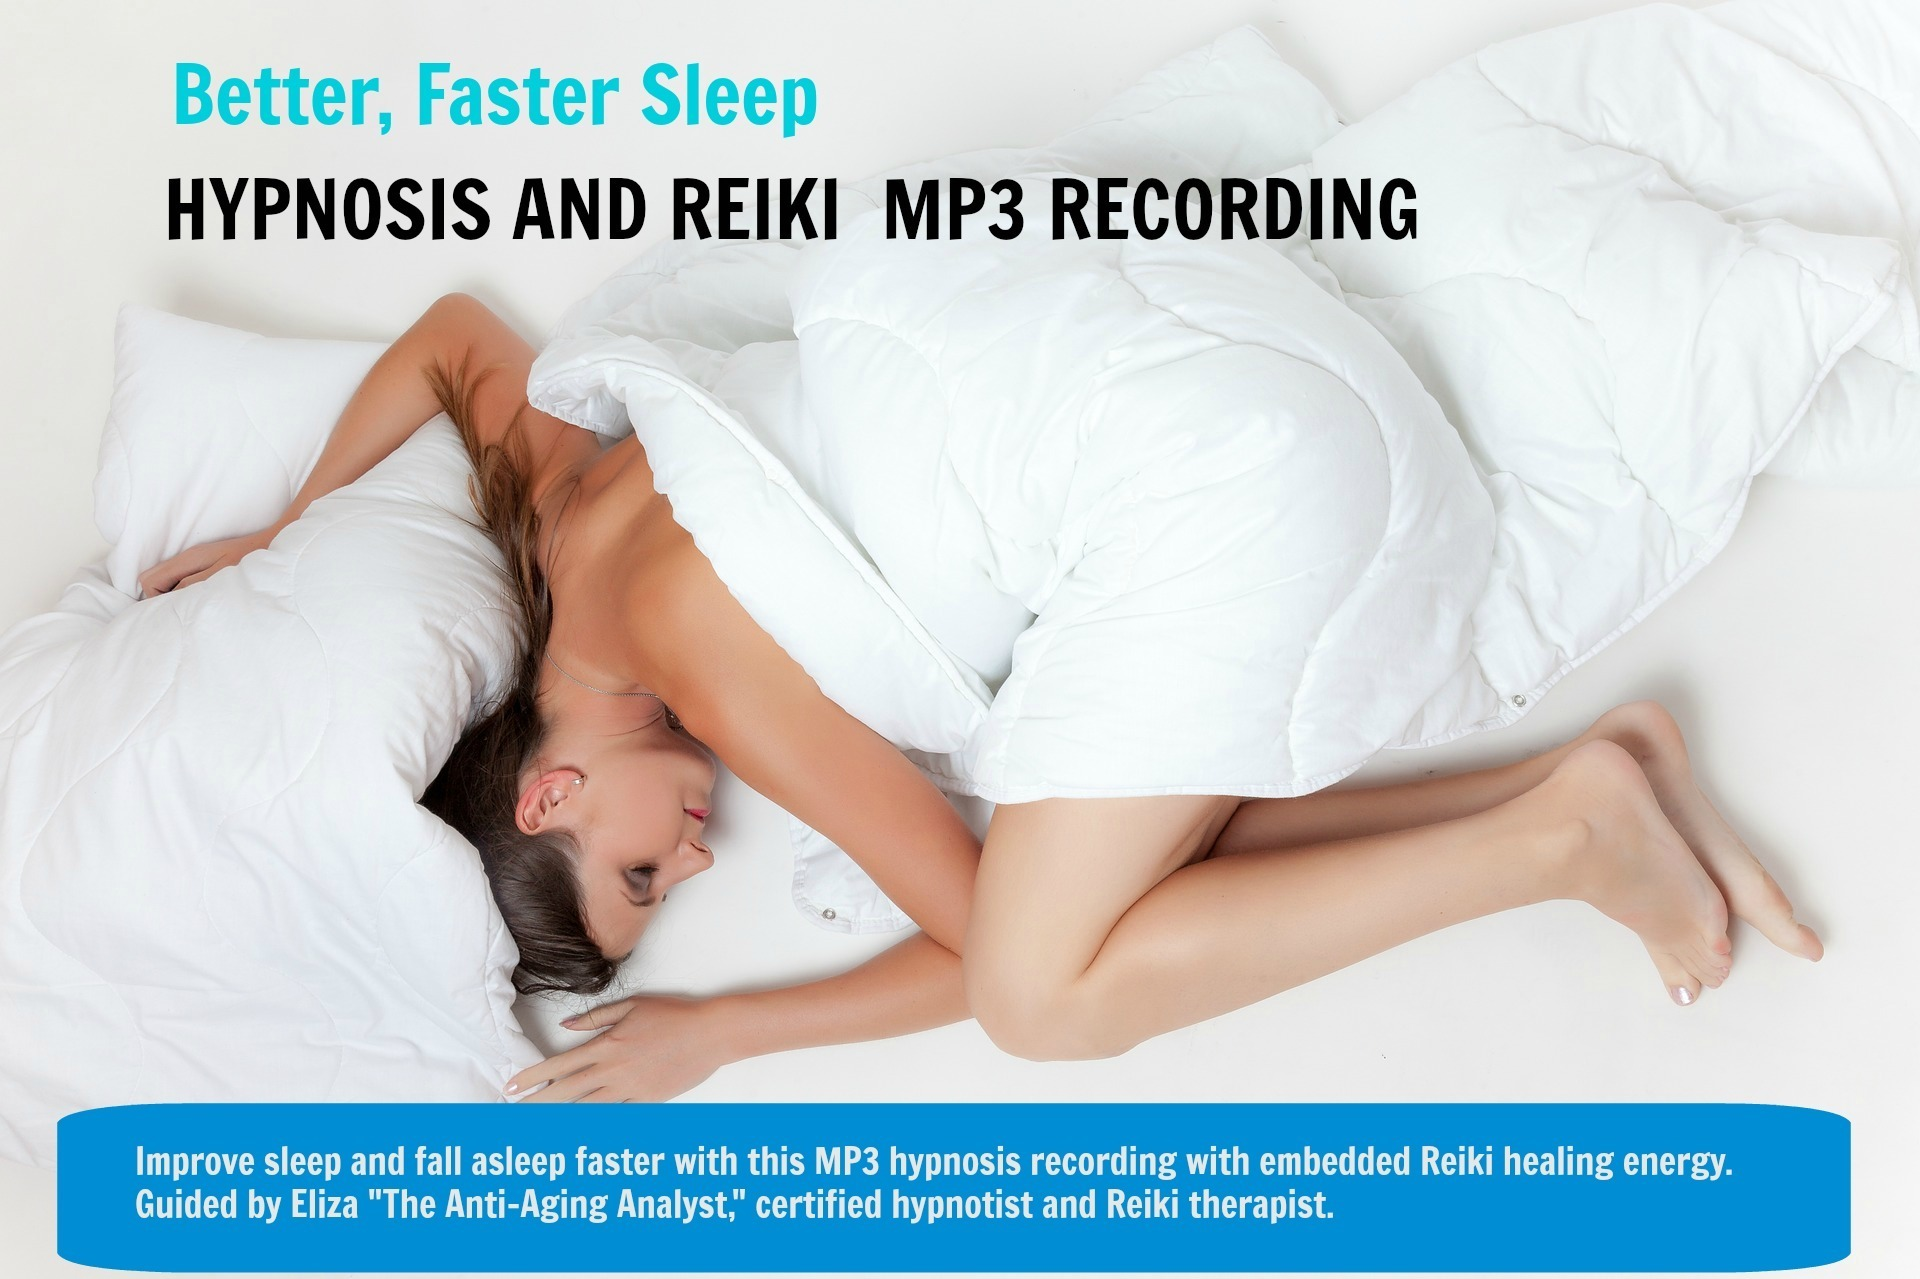 Hypnosis MP3 For Faster, Better Sleep (Digital Product) 00006